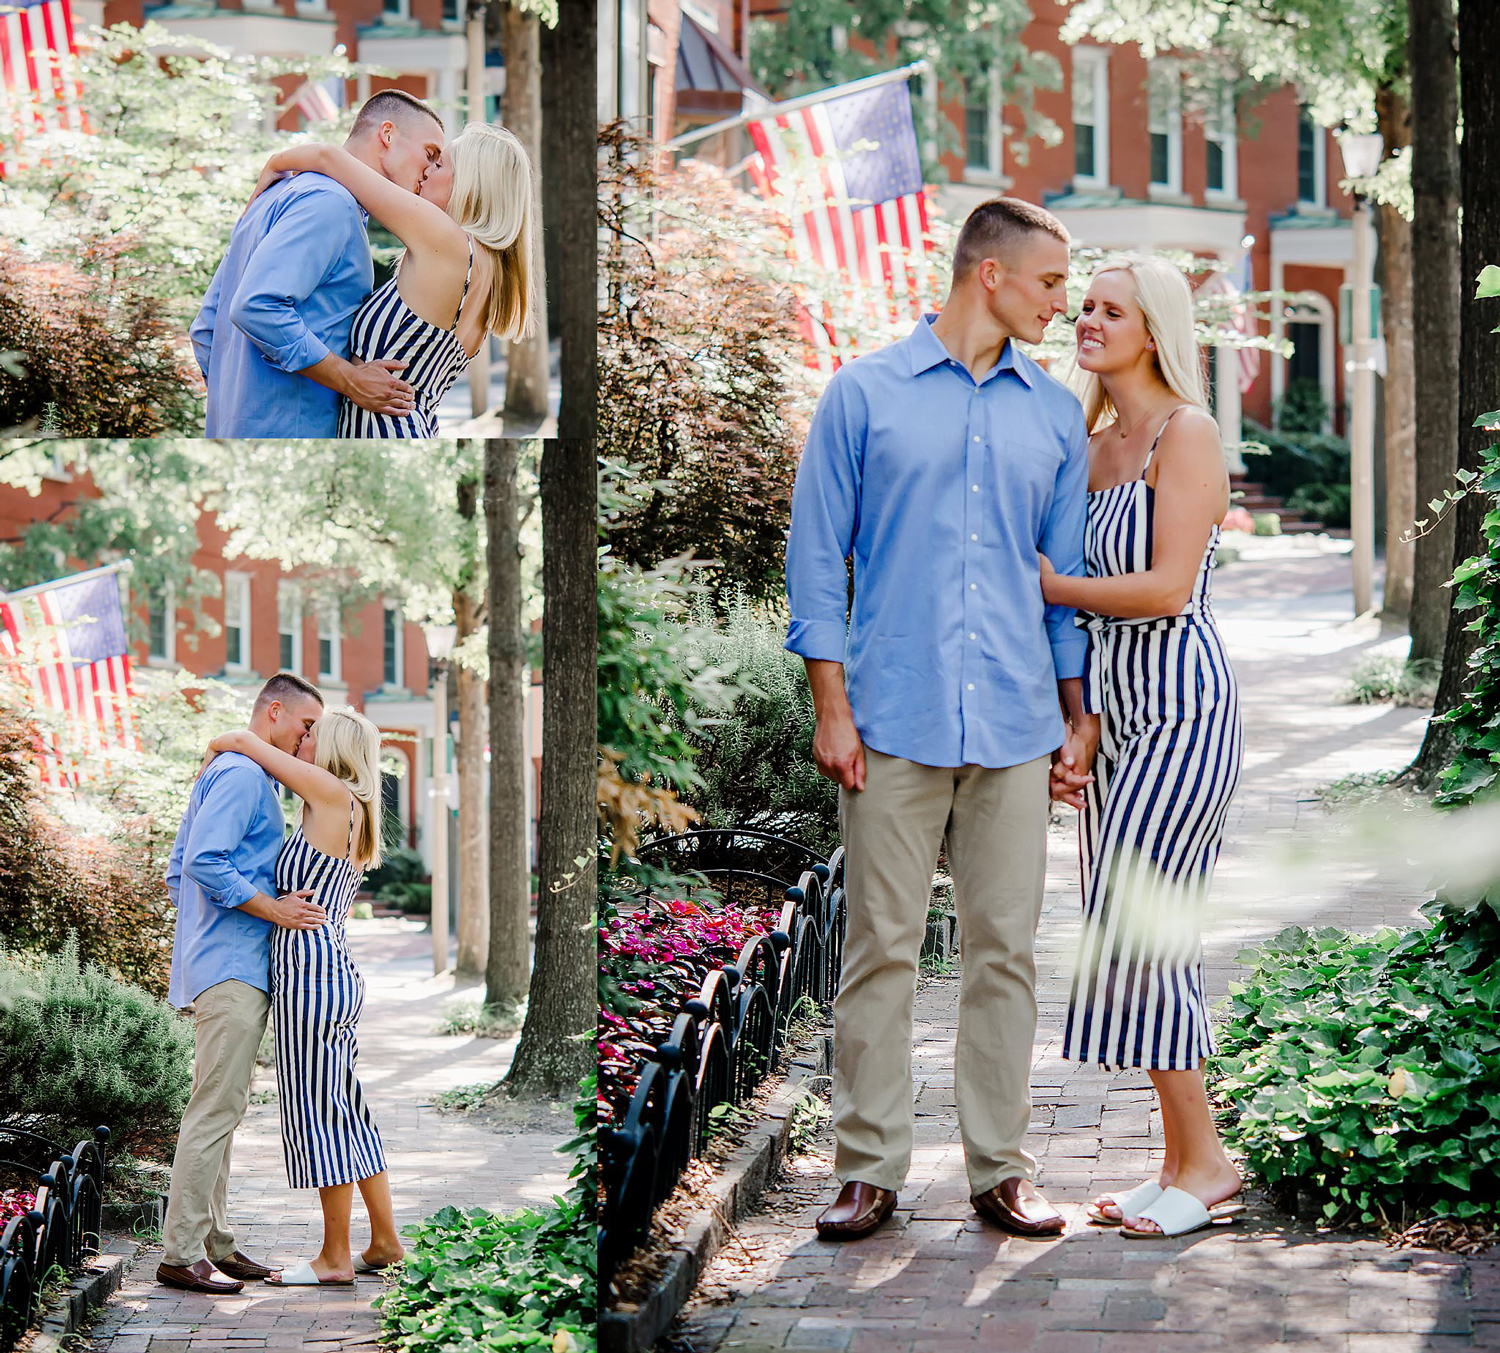 norfolk-pagoda-garden-engagement-pics-melissa-bliss-photography.jpg